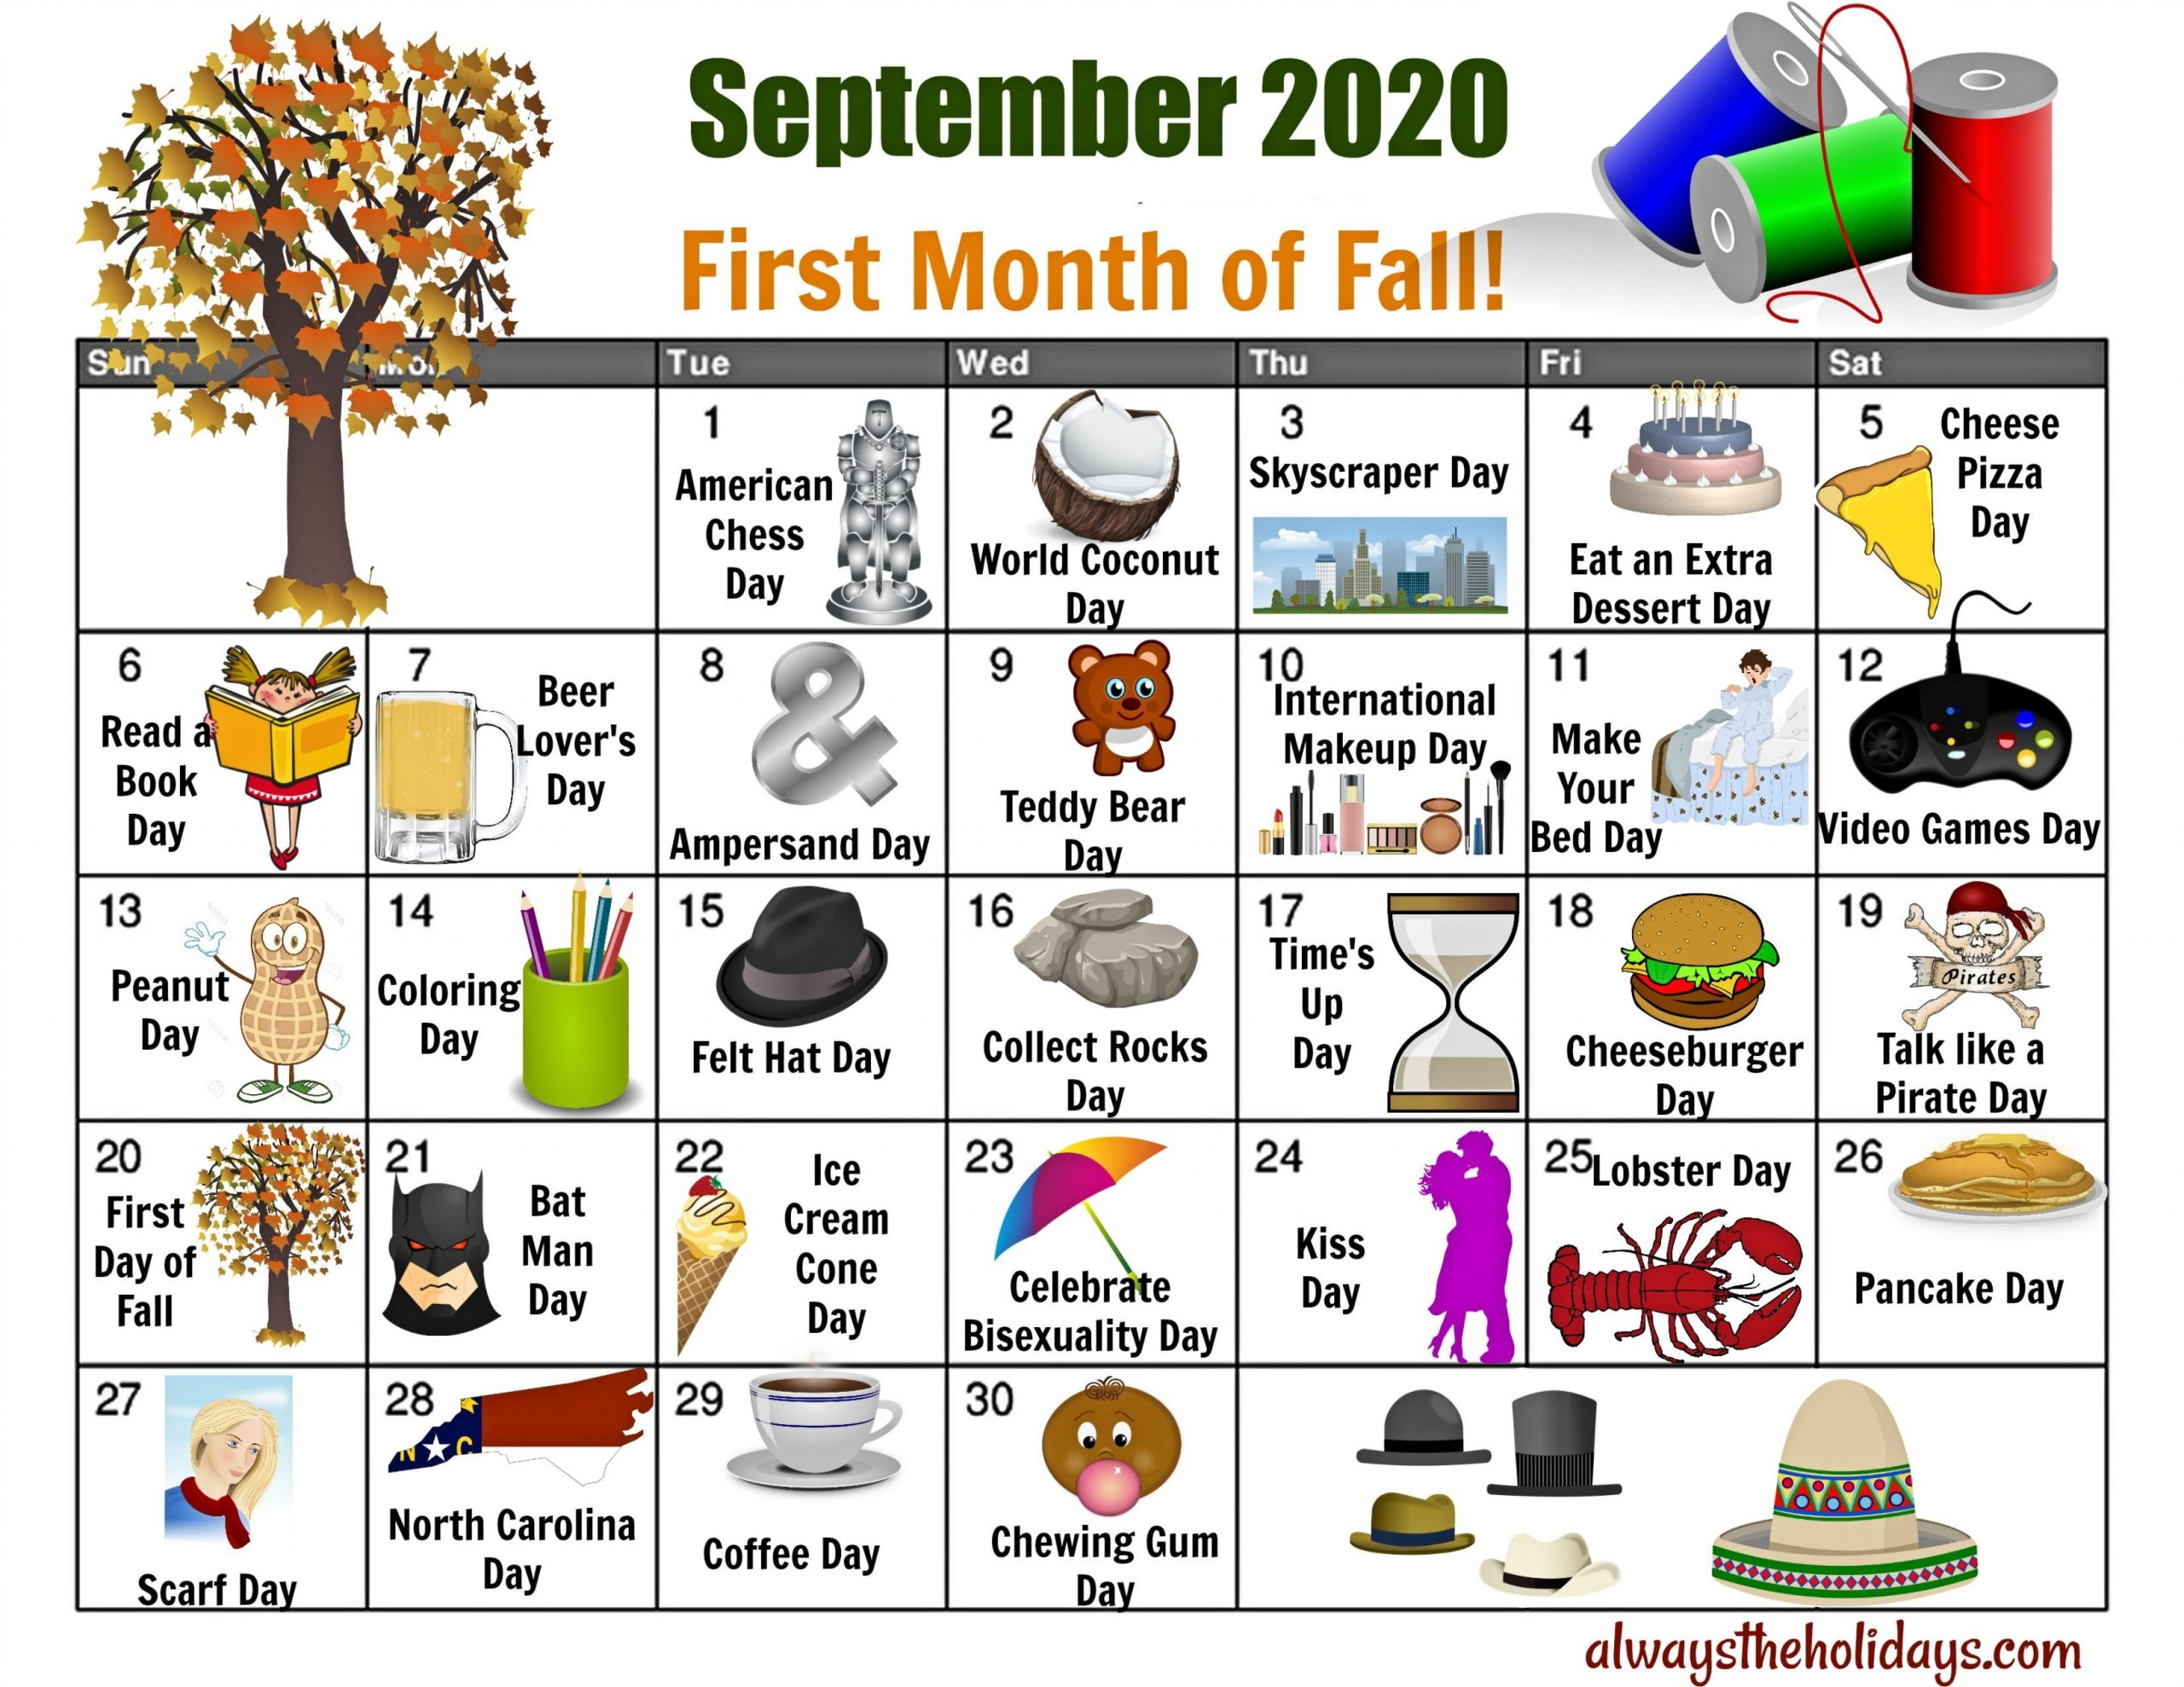 September National Day Calendar - Free Printable Calendars-Fun National Day Calendar Of 2021 Printable